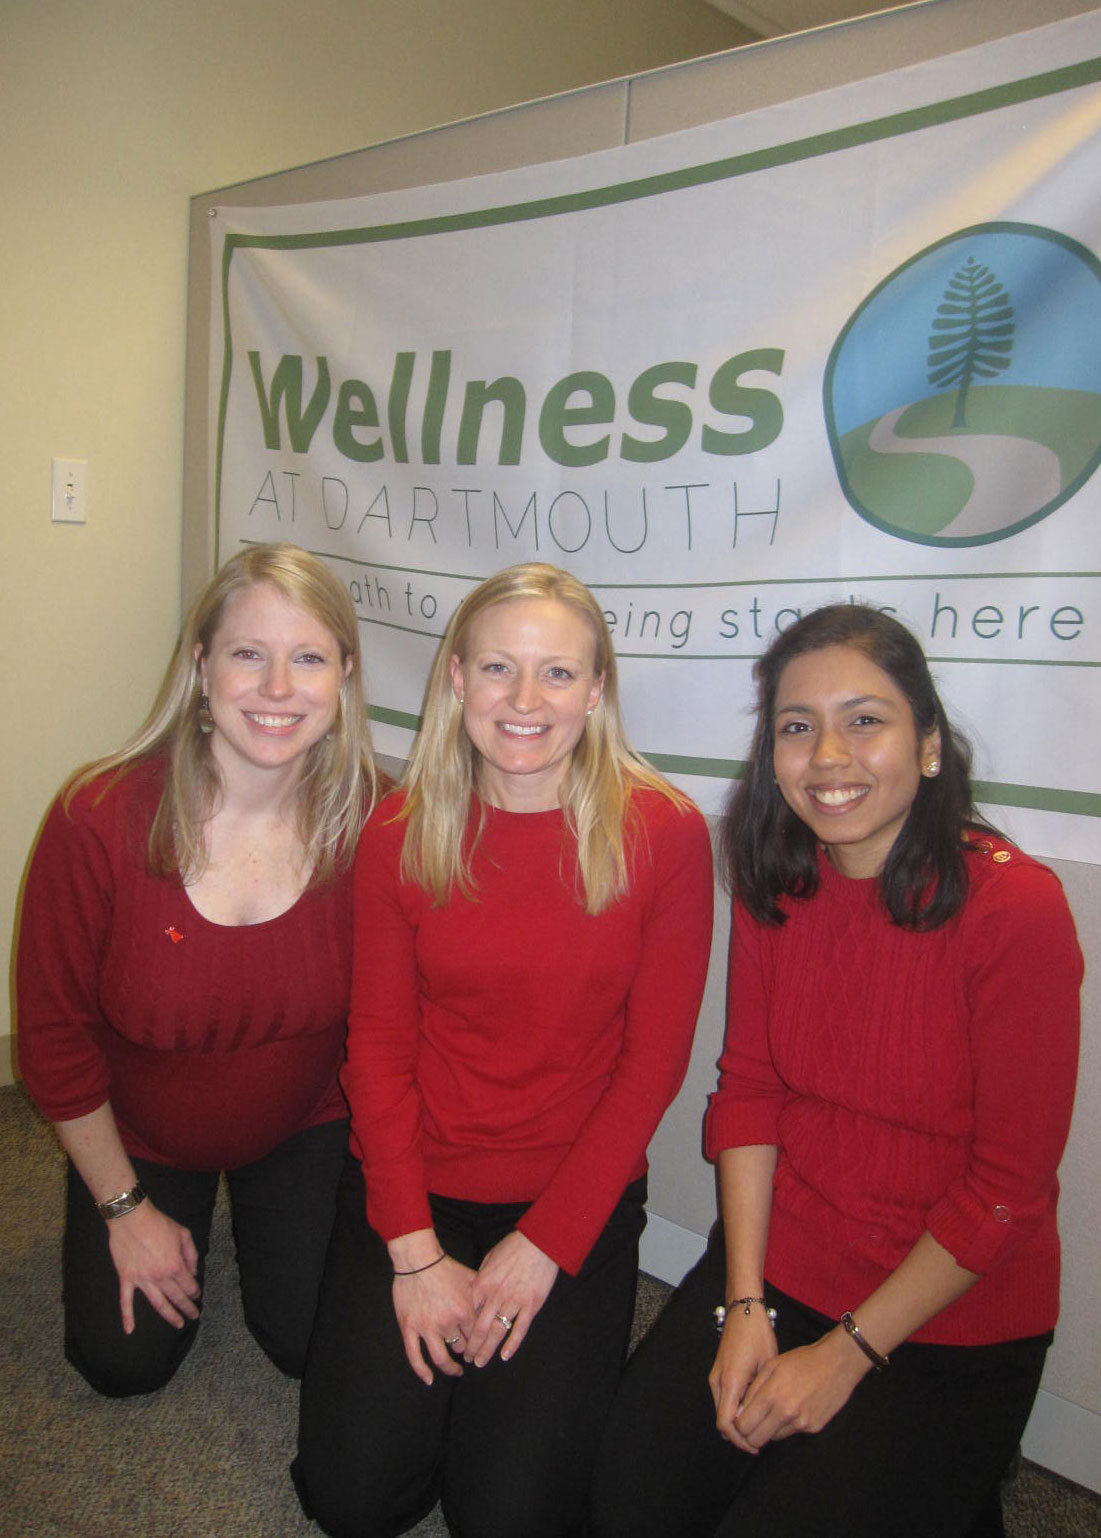 Wellness at Dartmouth Team Wearing Red to support heart month.